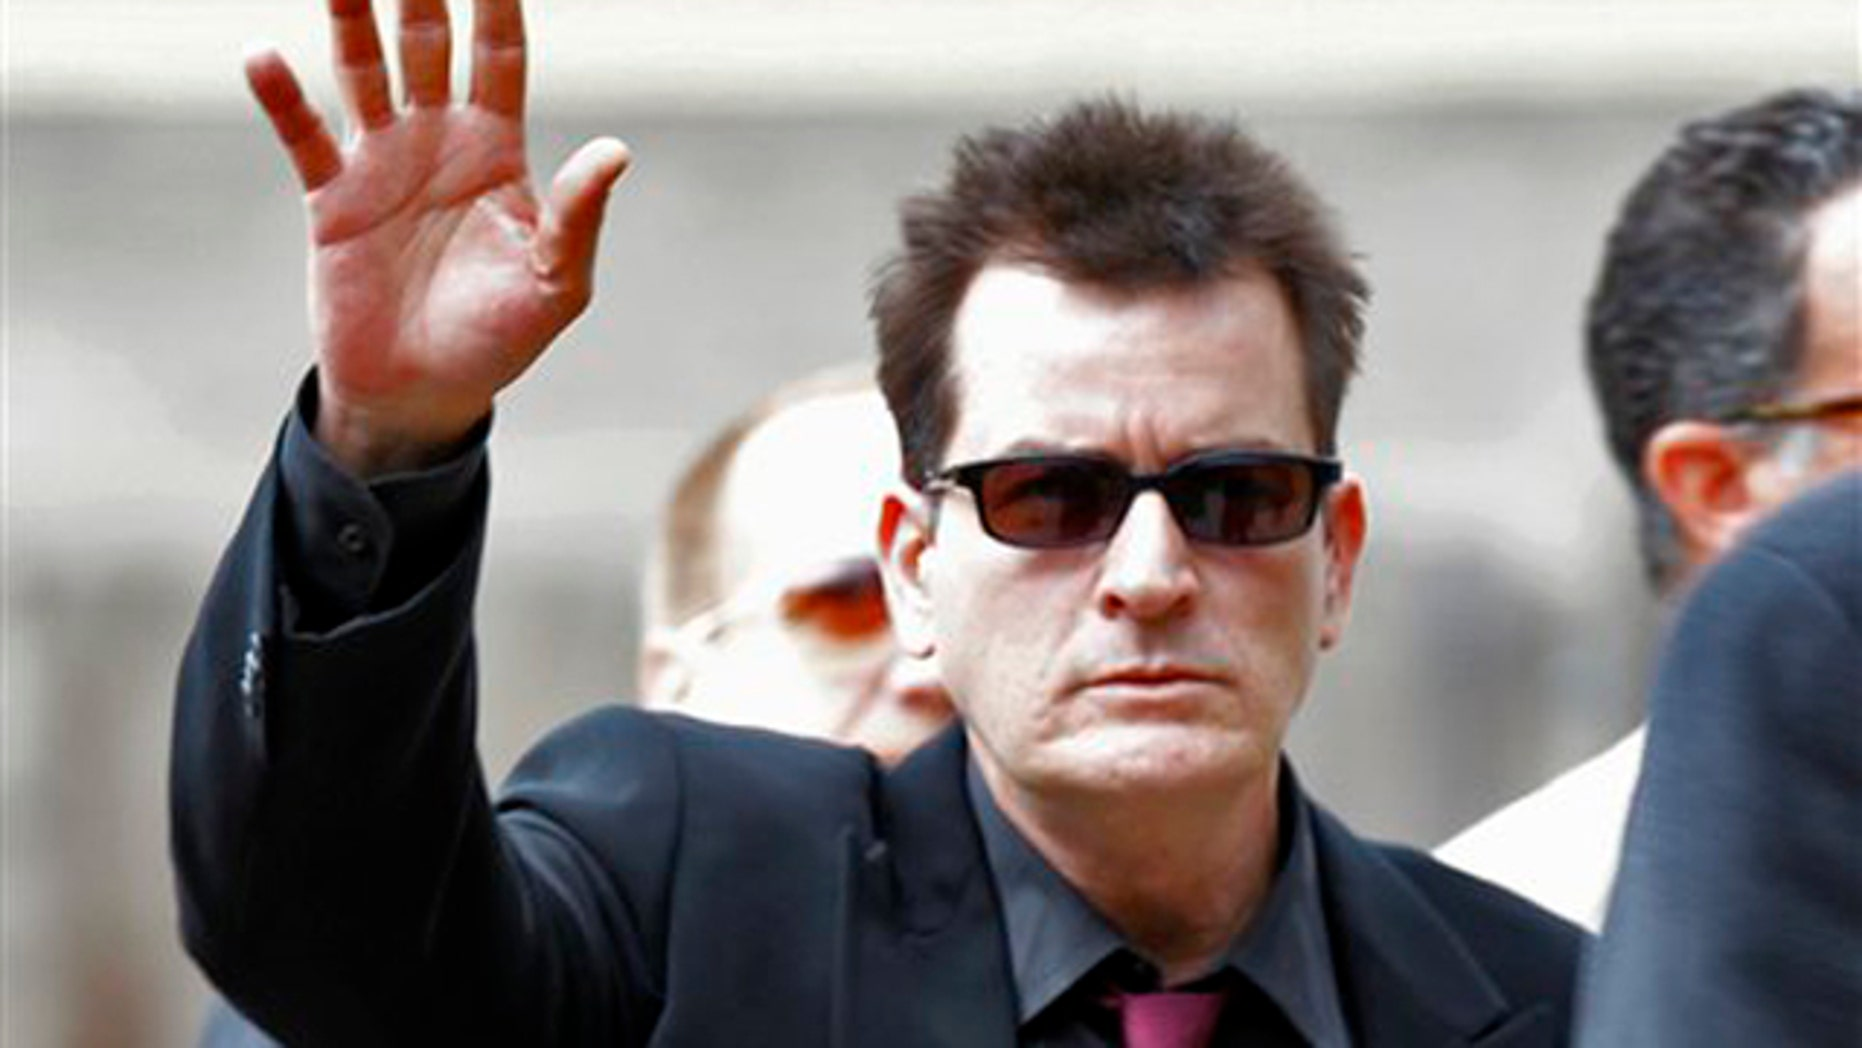 Charlie Sheen offended the warlock community during one of his tirades last week